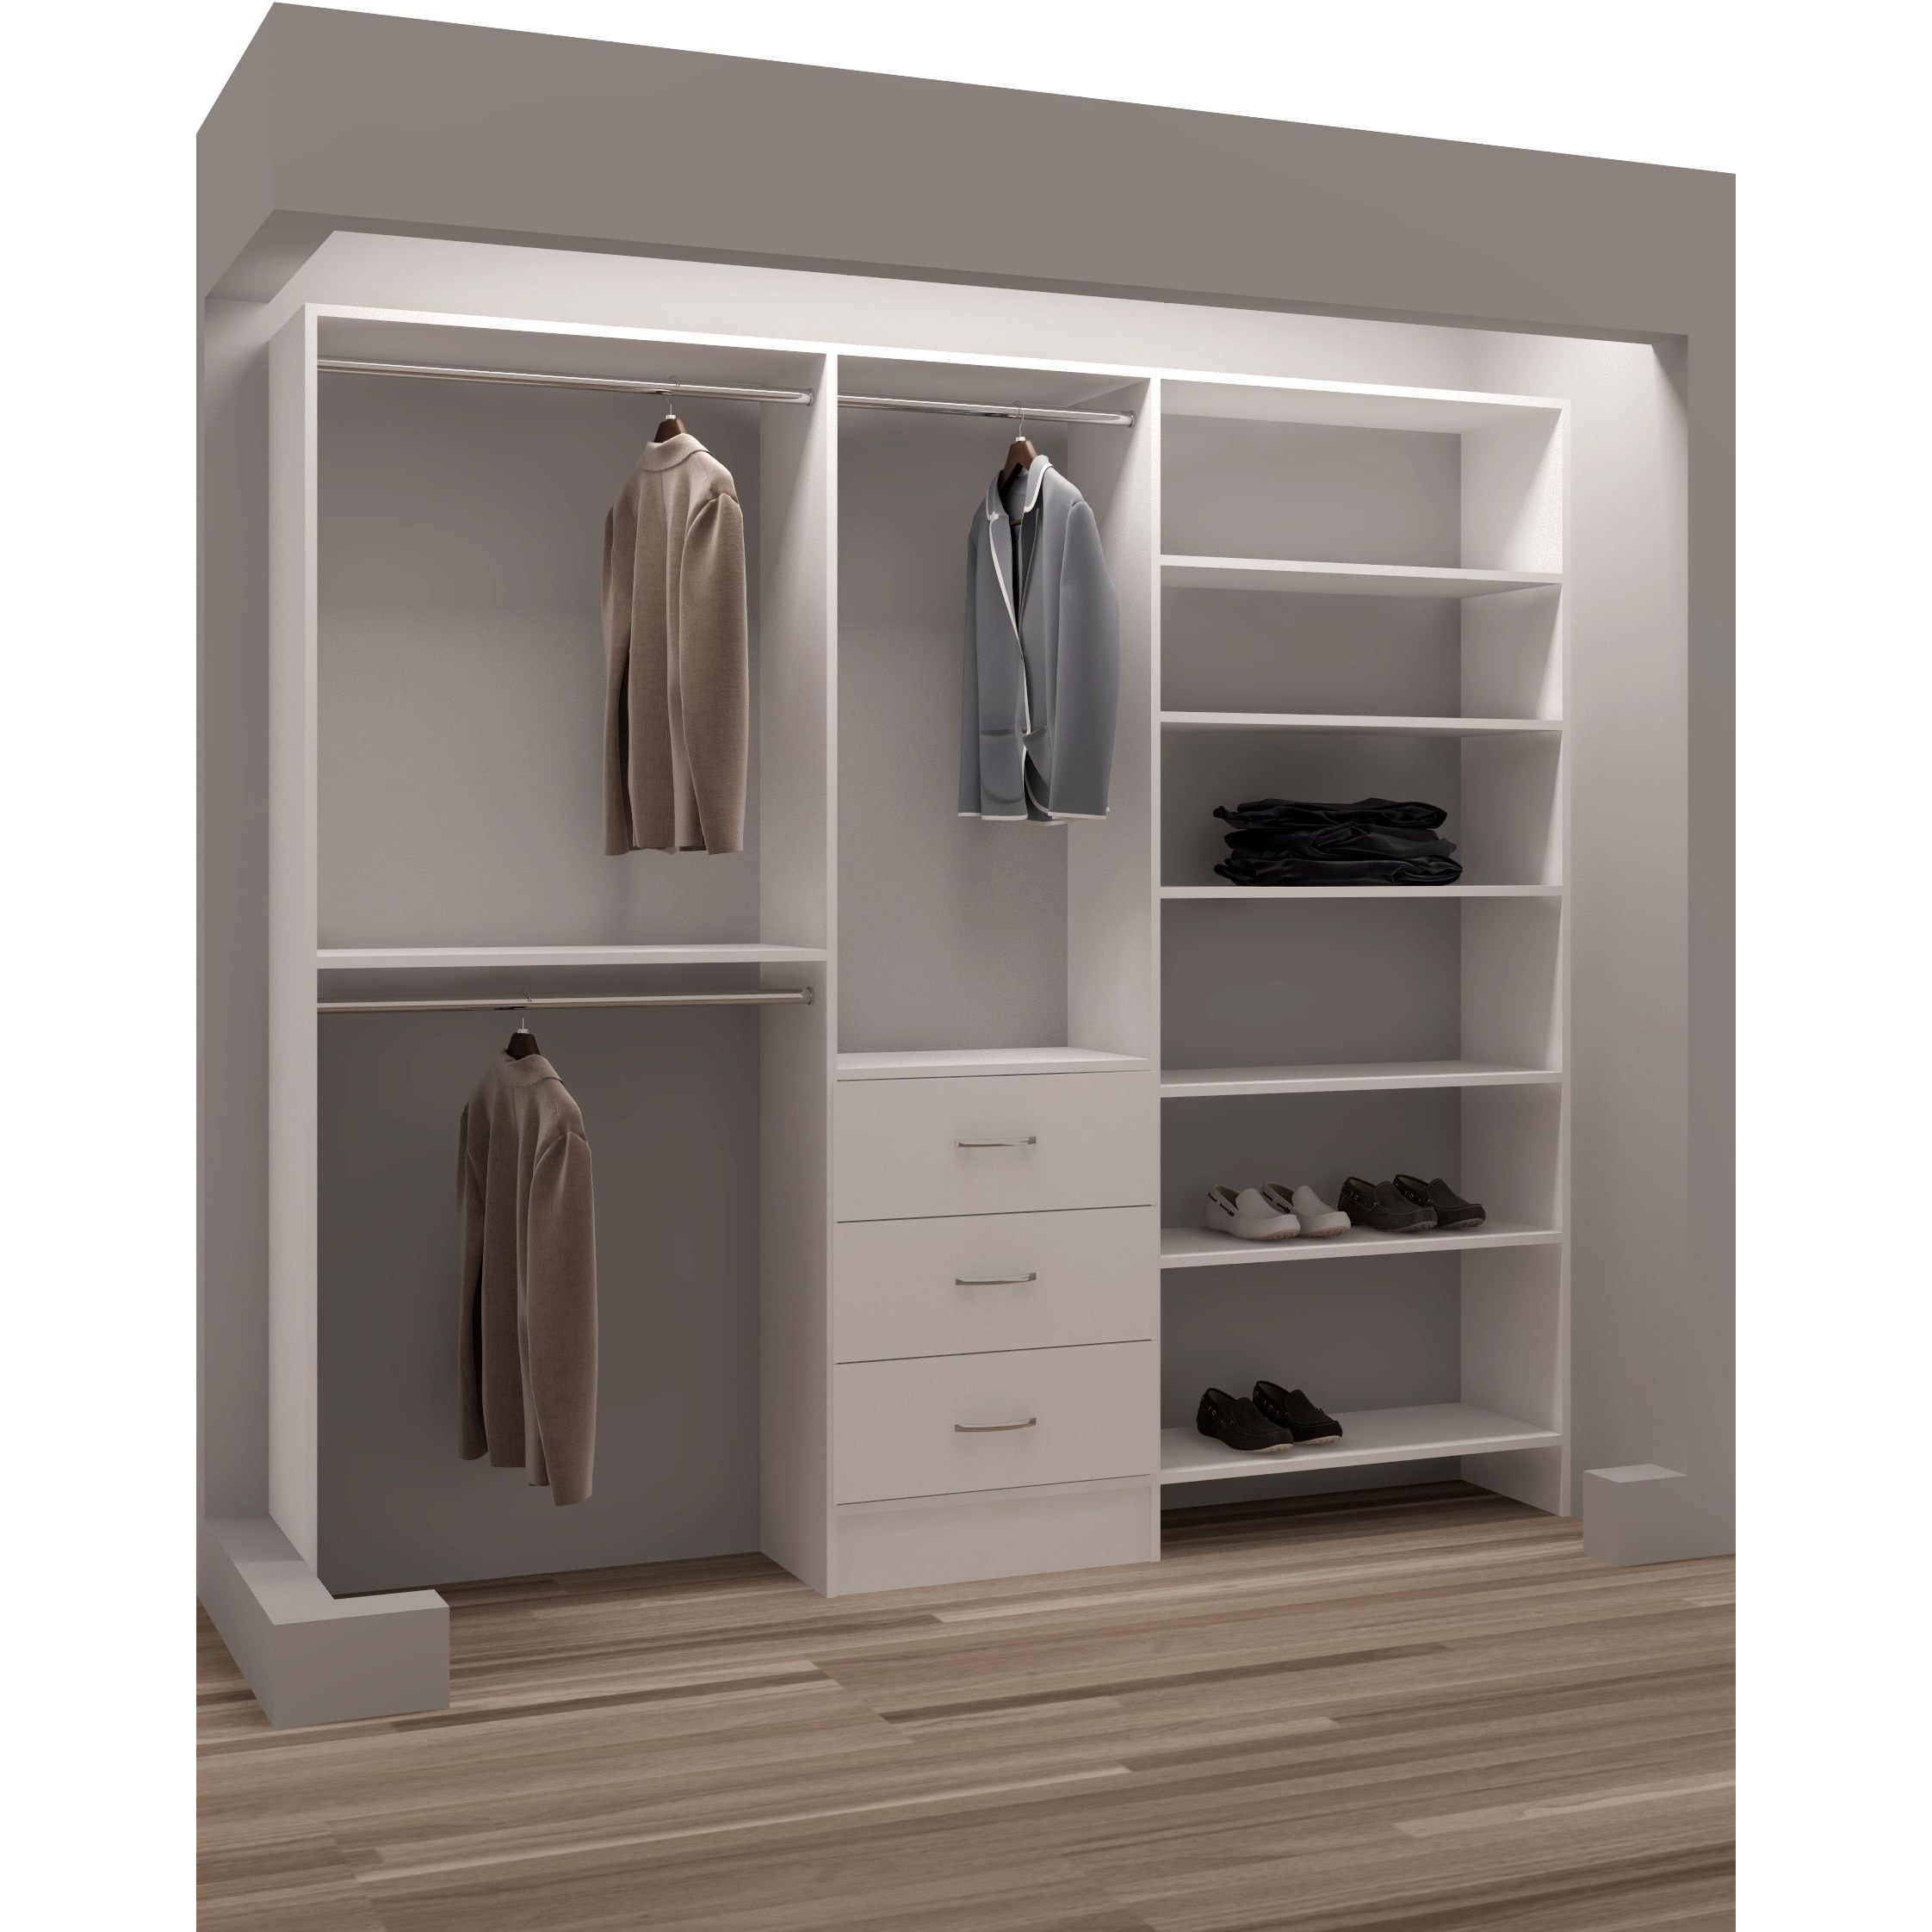 Most Recently Released Furniture : Ikea Double Wardrobe Buy Wardrobe Open Wardrobe System Regarding Double Wardrobes With Drawers And Shelves (View 7 of 15)